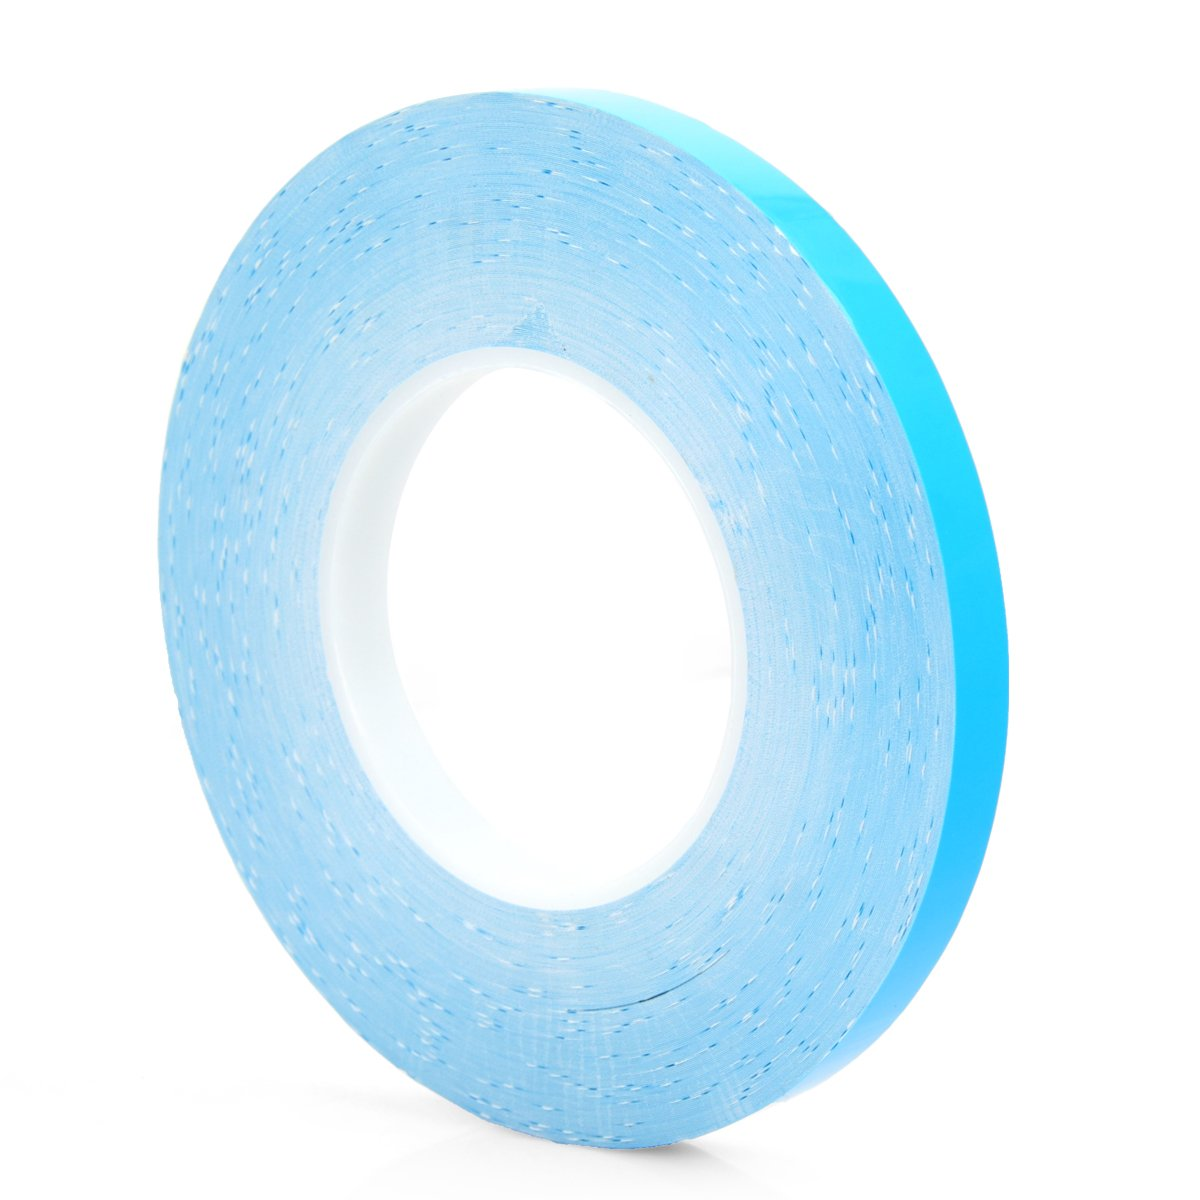 55 Yards Thermal Adhesive Conductive Tape Double Sided Cooling Tape for IC Chipset Heatsink LED (1/2 inch x 55 yards)